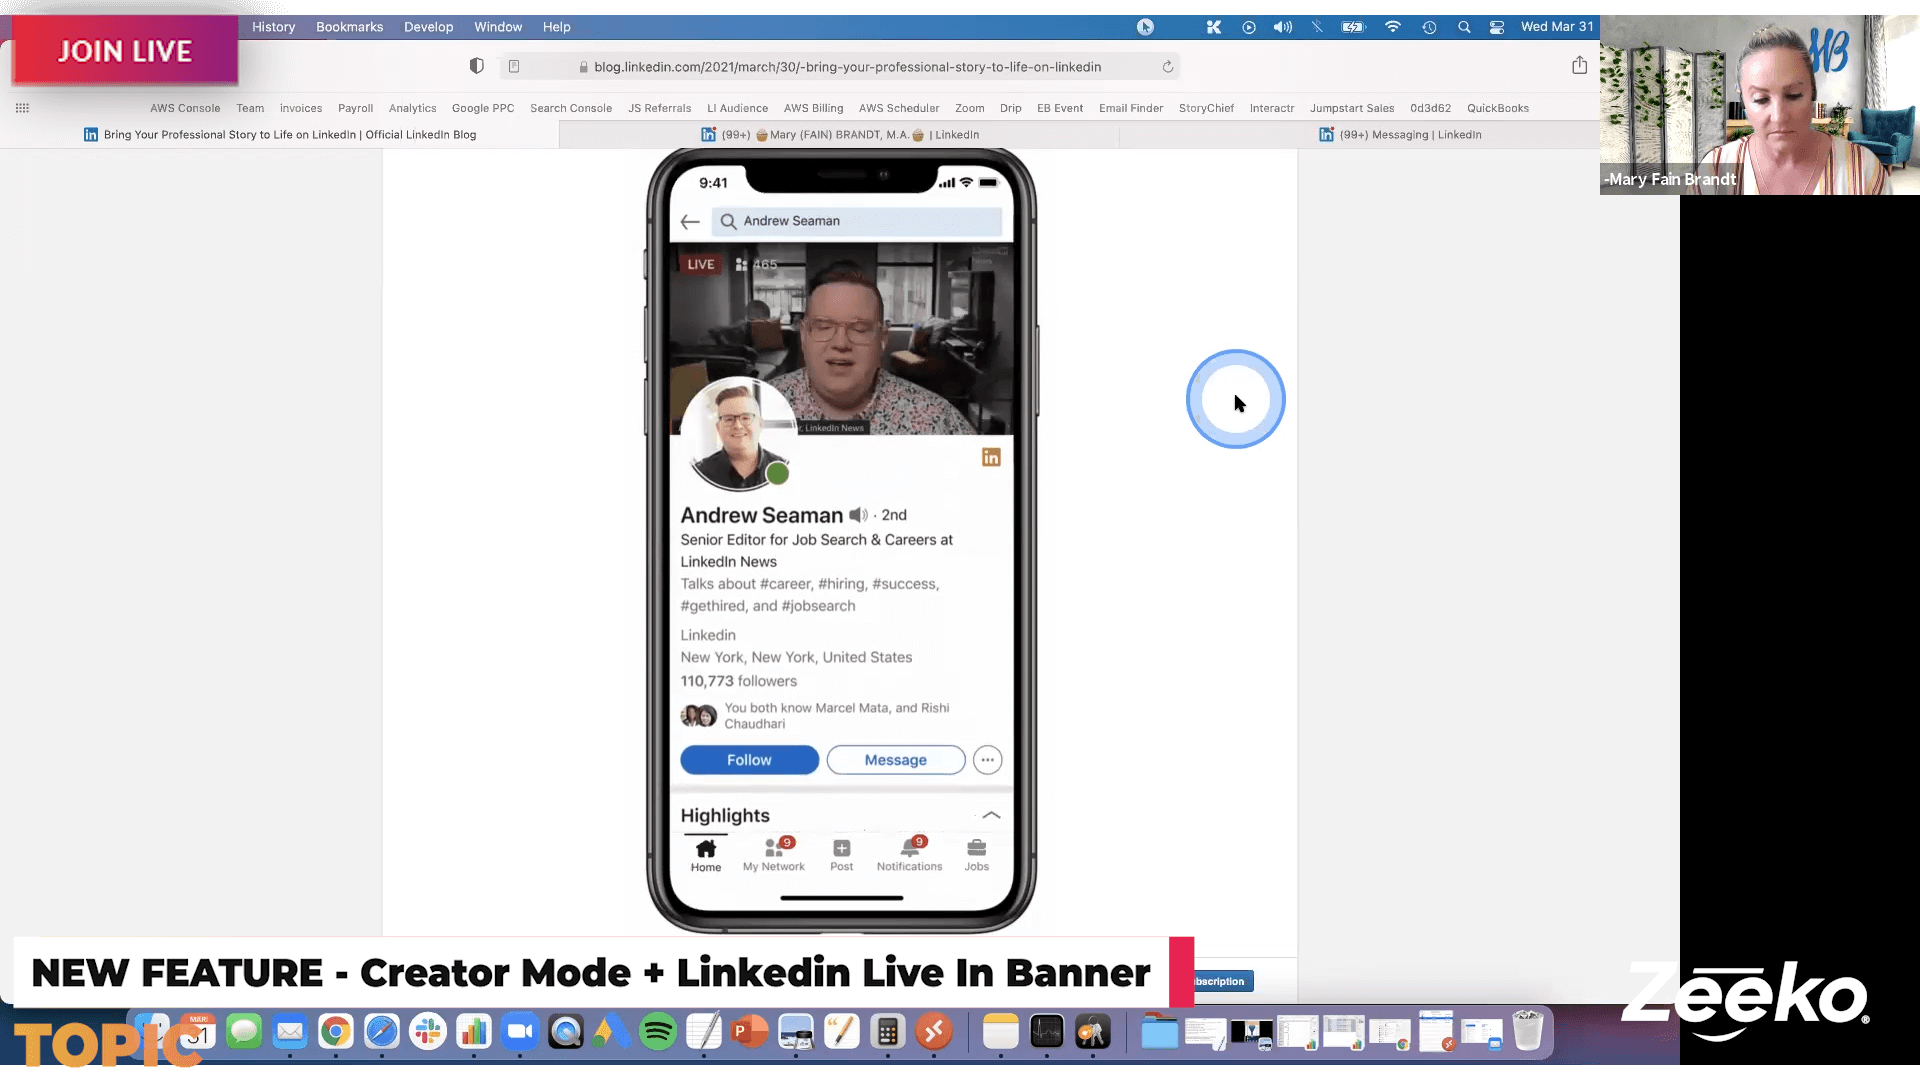 In today's hangout we explored New features announced by Linkedin just yesterday including: - Video introductions on your profile - Live broadcasting on your banner - Creator mode - Service page launch We also spent time revisiting last week's discussion about weekly invite limits.